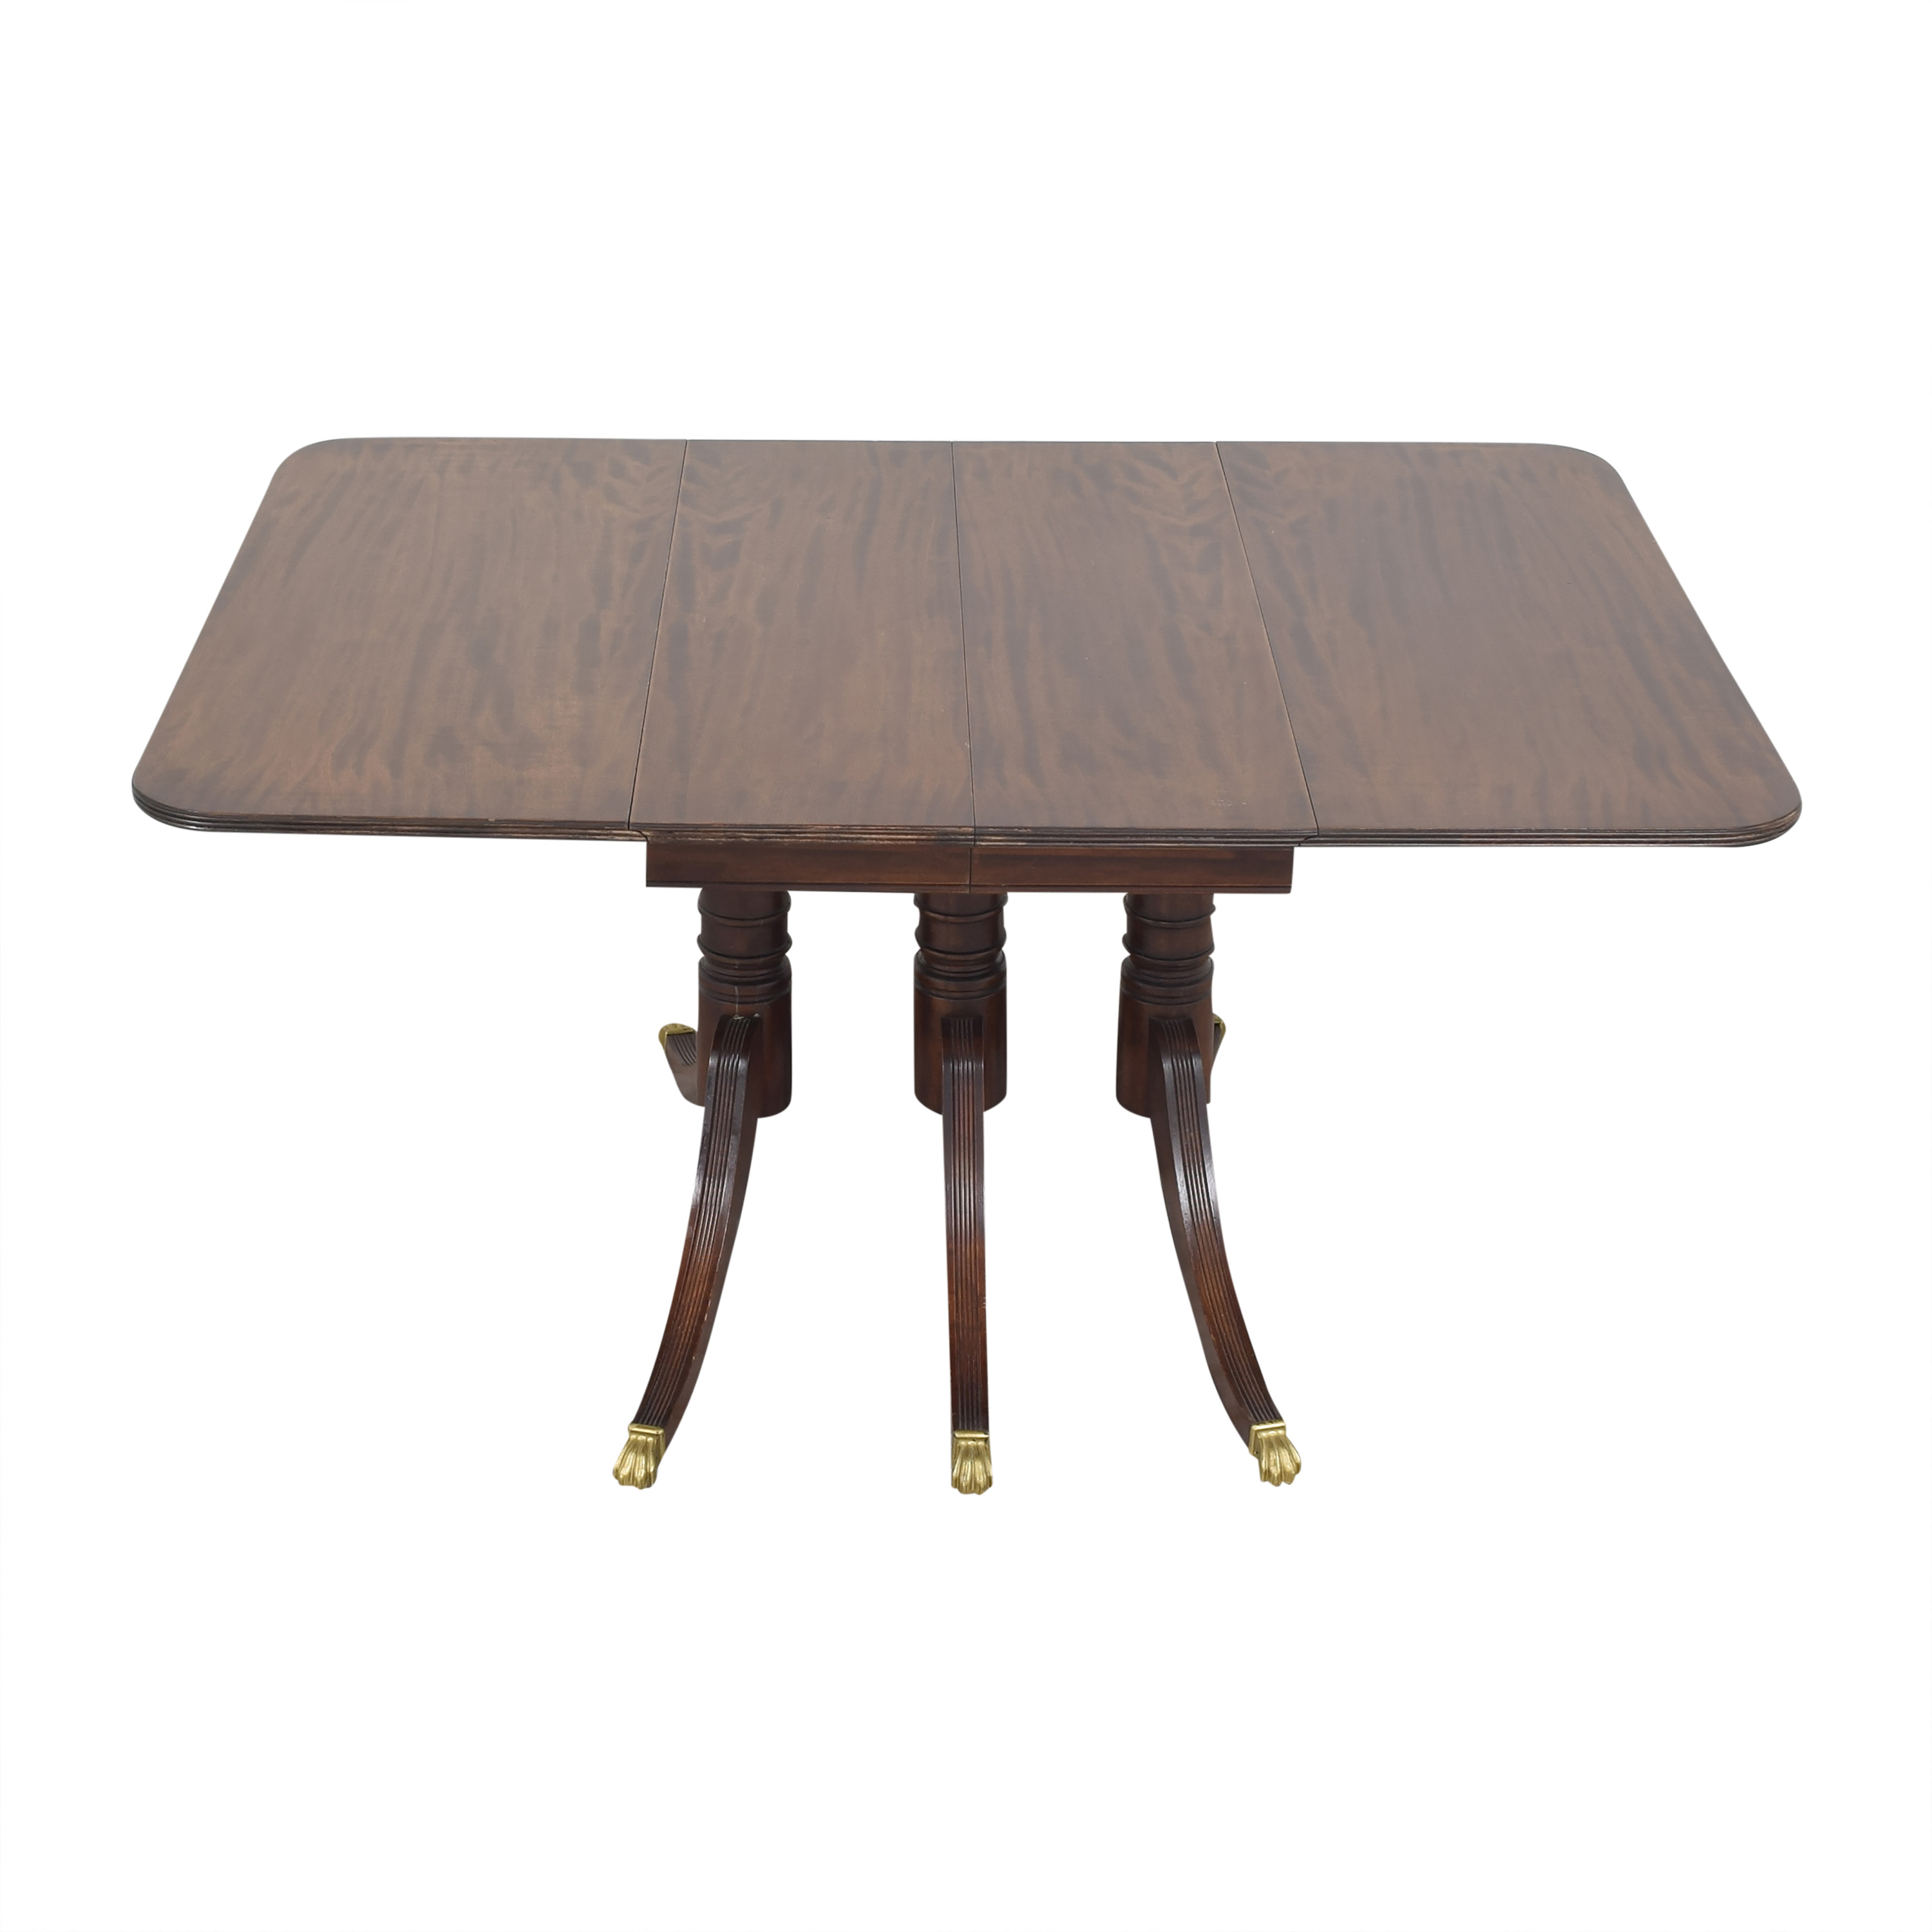 Jefferson Wood Working Jefferson Wood Working Drop Leaf Dining Table ct